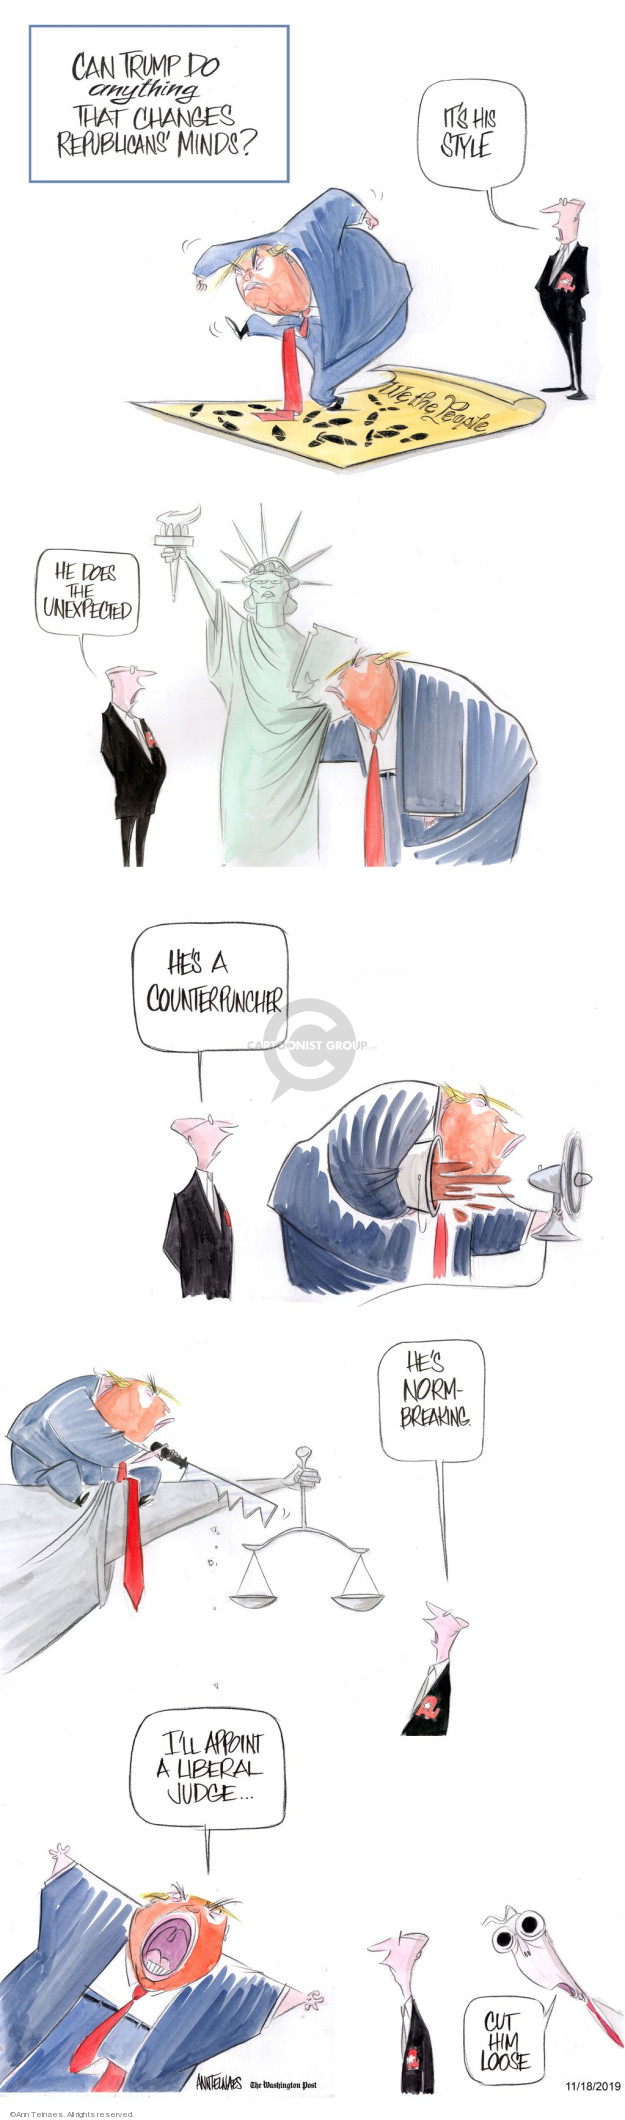 Ann Telnaes  Ann Telnaes' Editorial Cartoons 2019-11-18 style